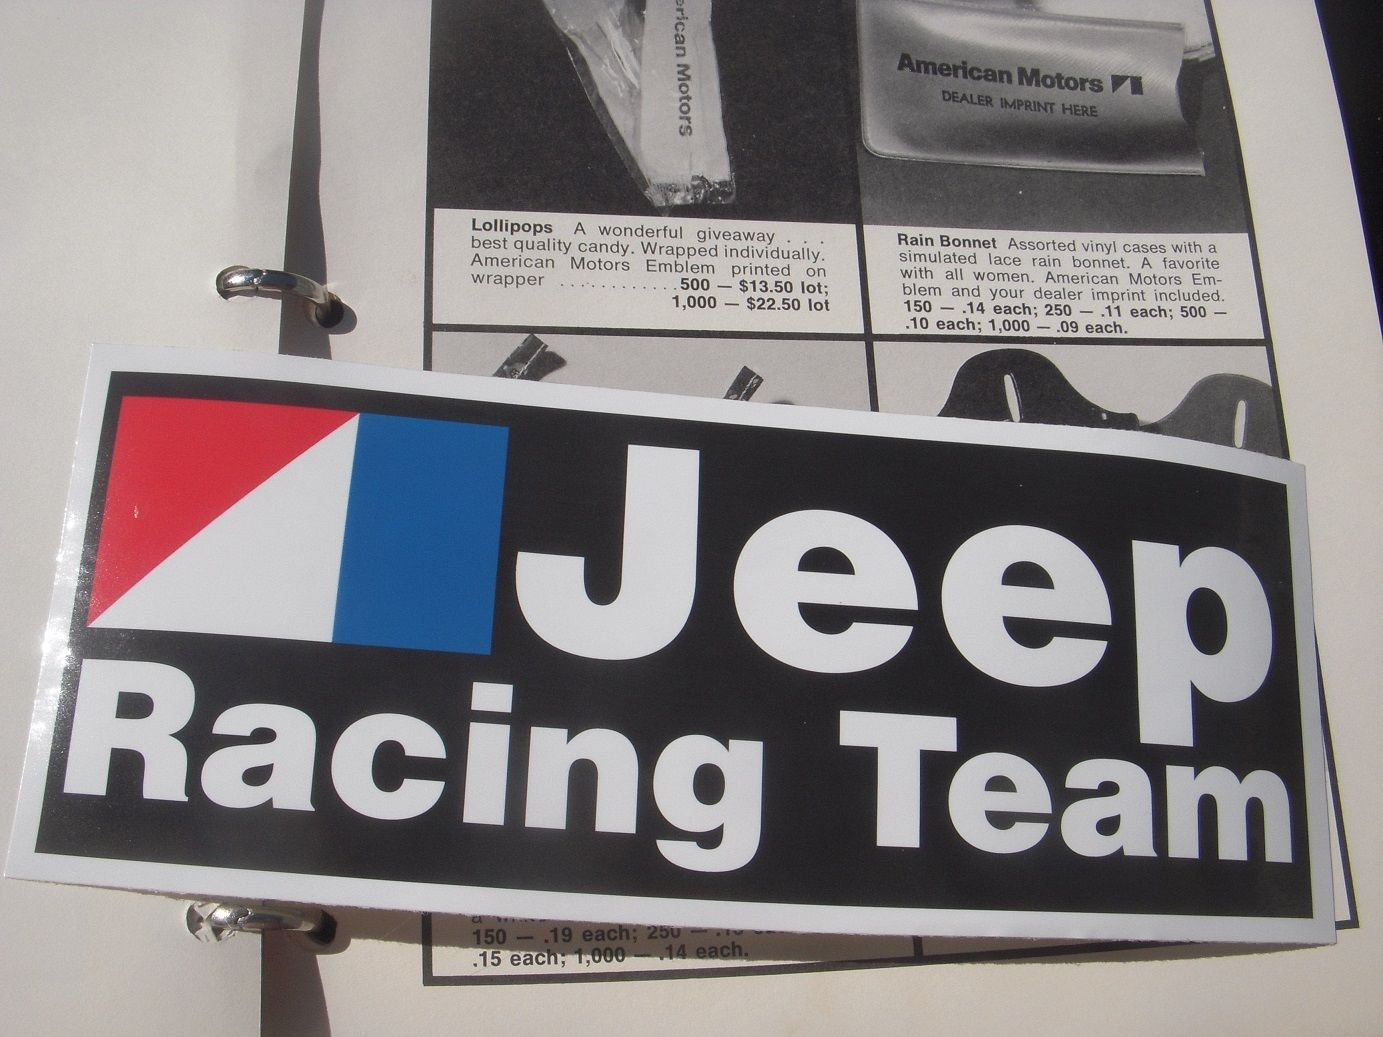 amc-jeep-racing-team-decal.jpg (177447 bytes)